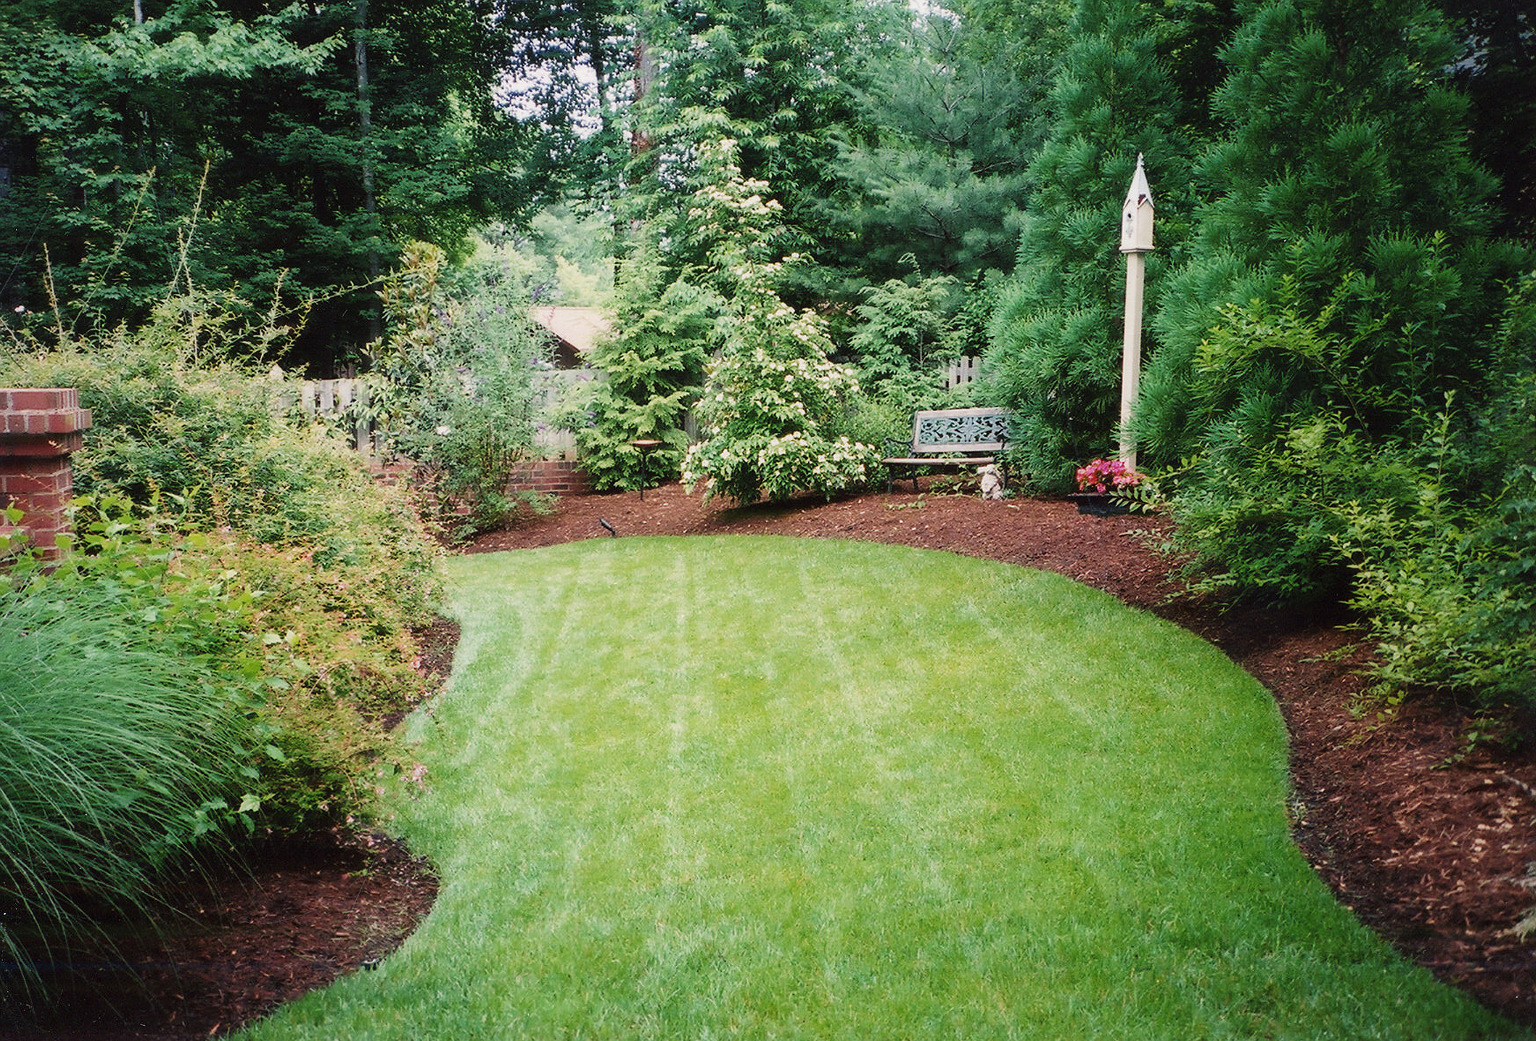 how to apply mulch garden compost bark wood clippings leaves plants flowers shrubs trees